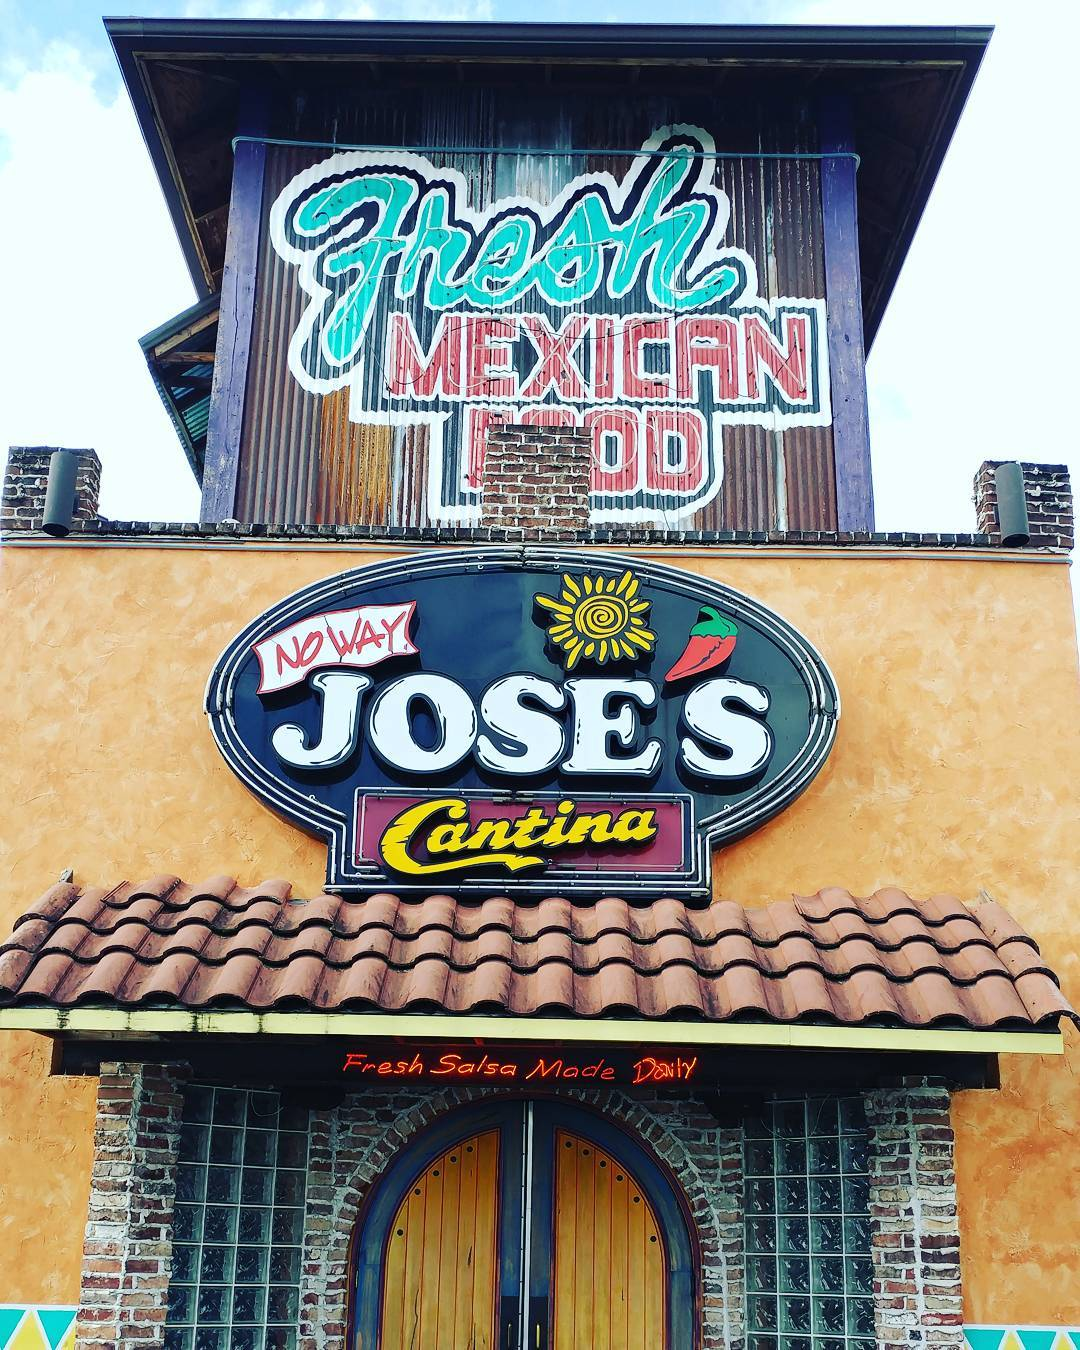 Pigeon Forge Restaurants - No Way Jose's Pigeon Forge - Original Photo